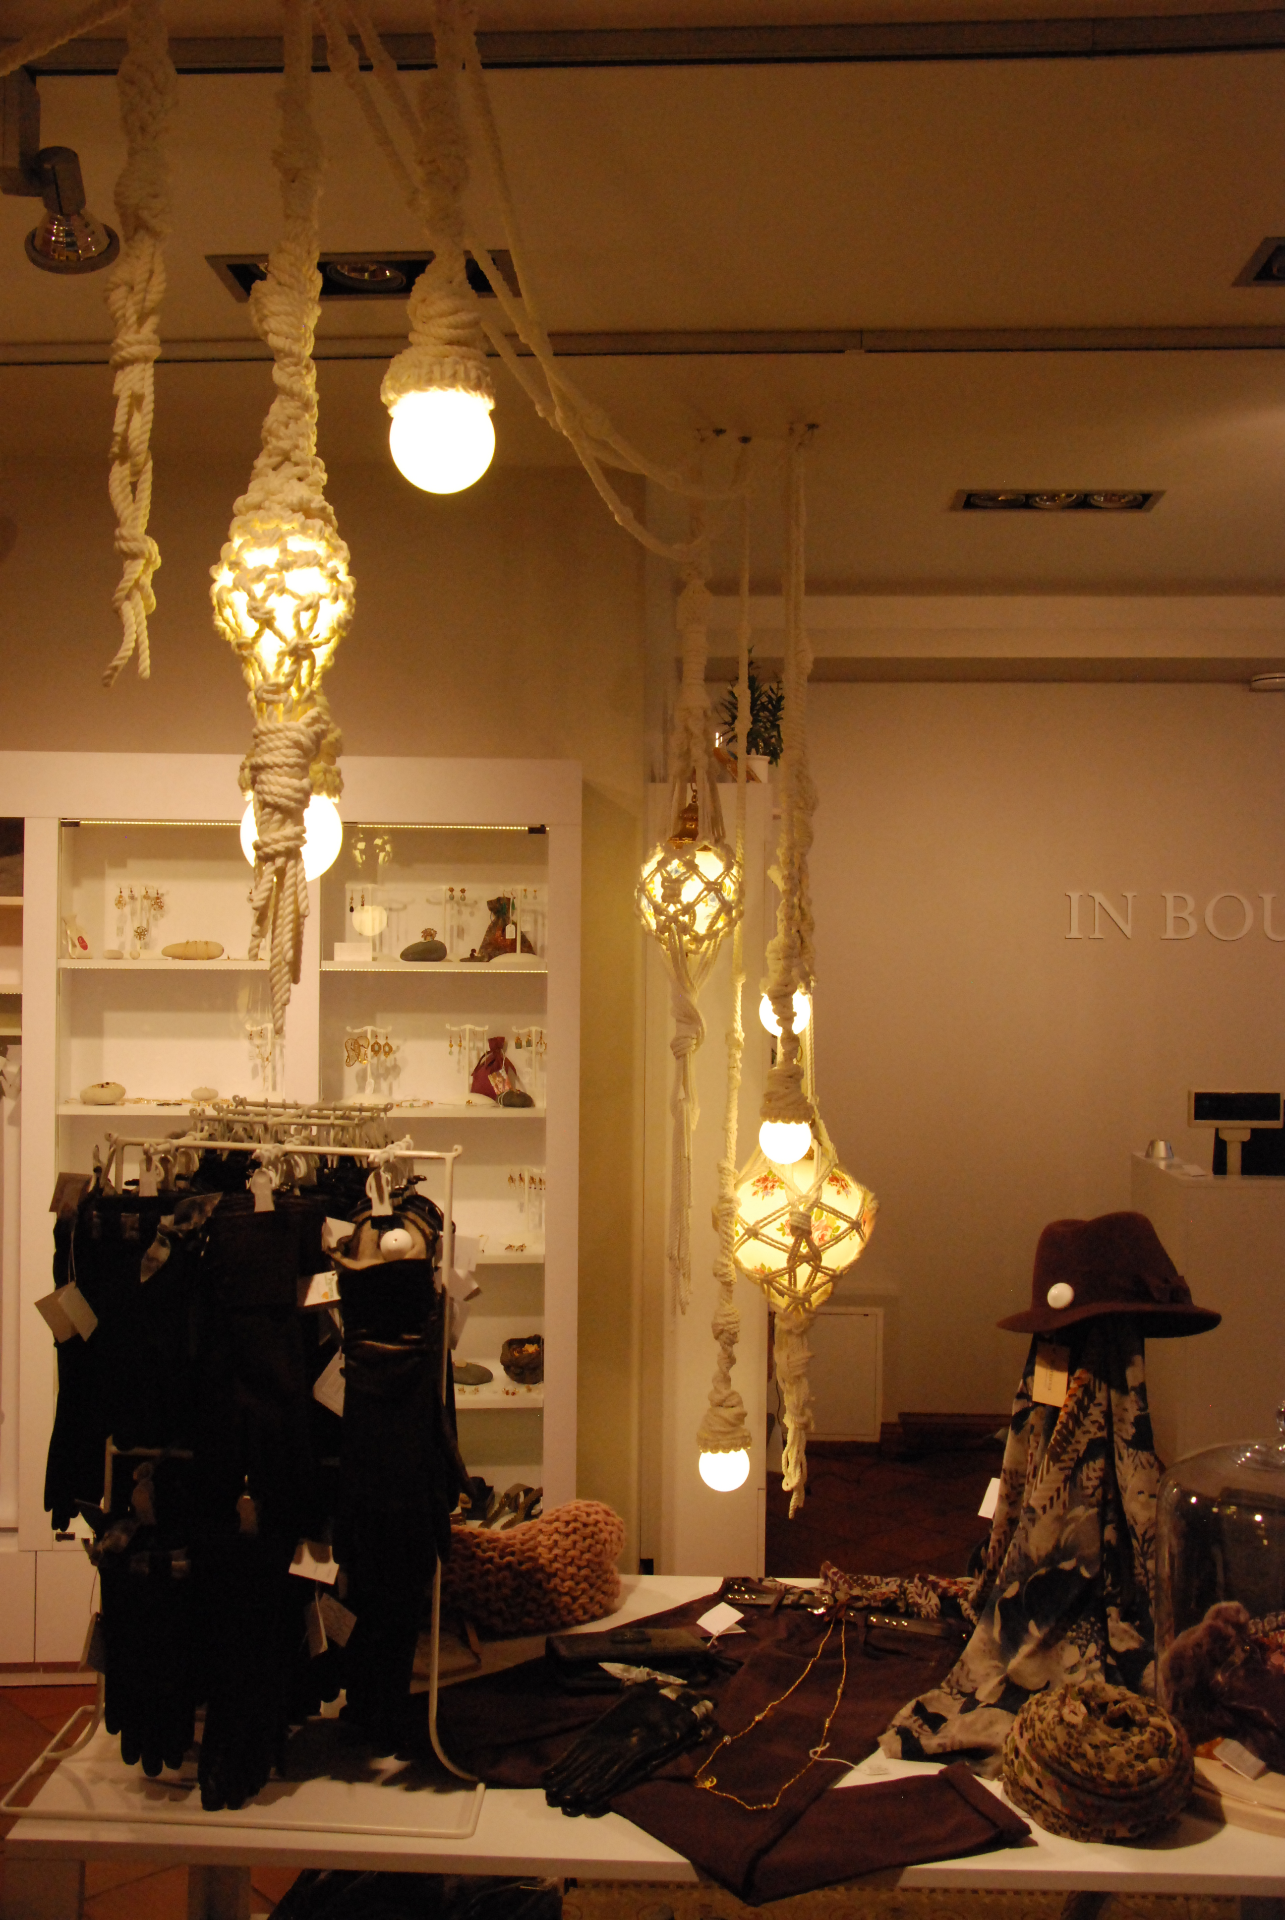 IN Boutique